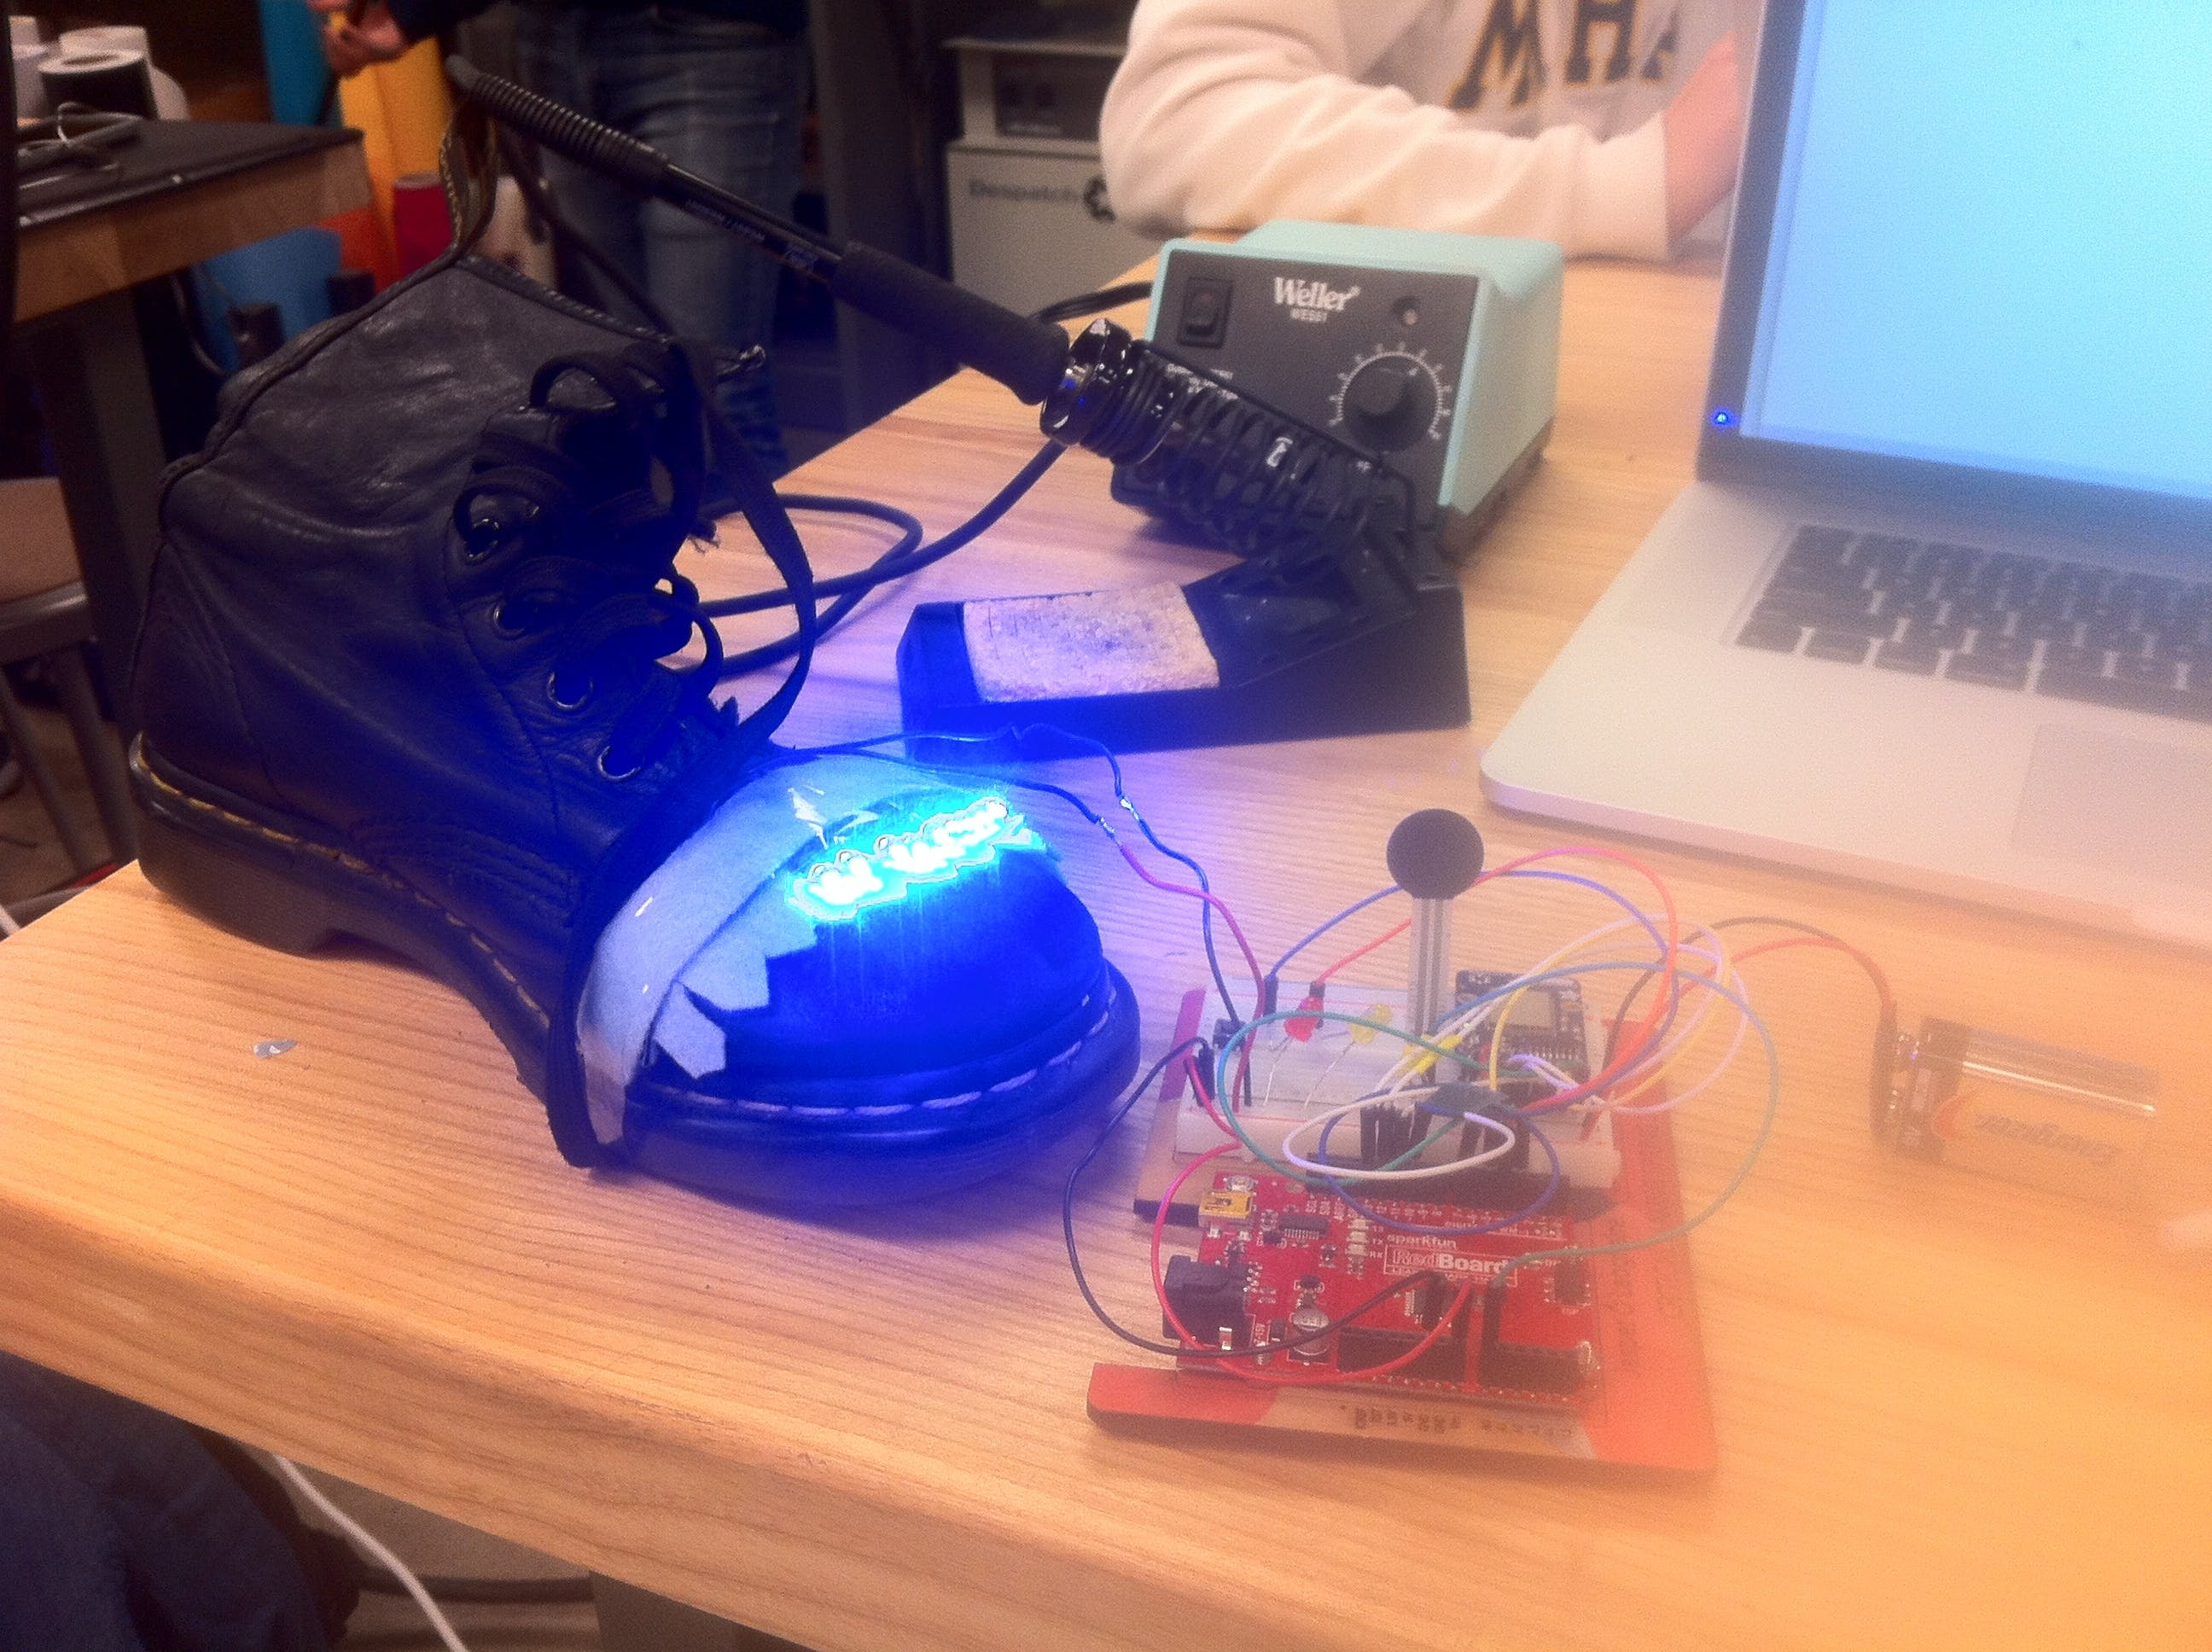 """The Arduino sends GET requests for the number of steps to be compared to """"steps"""" obtained from the force-sensitive resistor (black circle), and lights up the LEDs if the latter exceeds the former"""